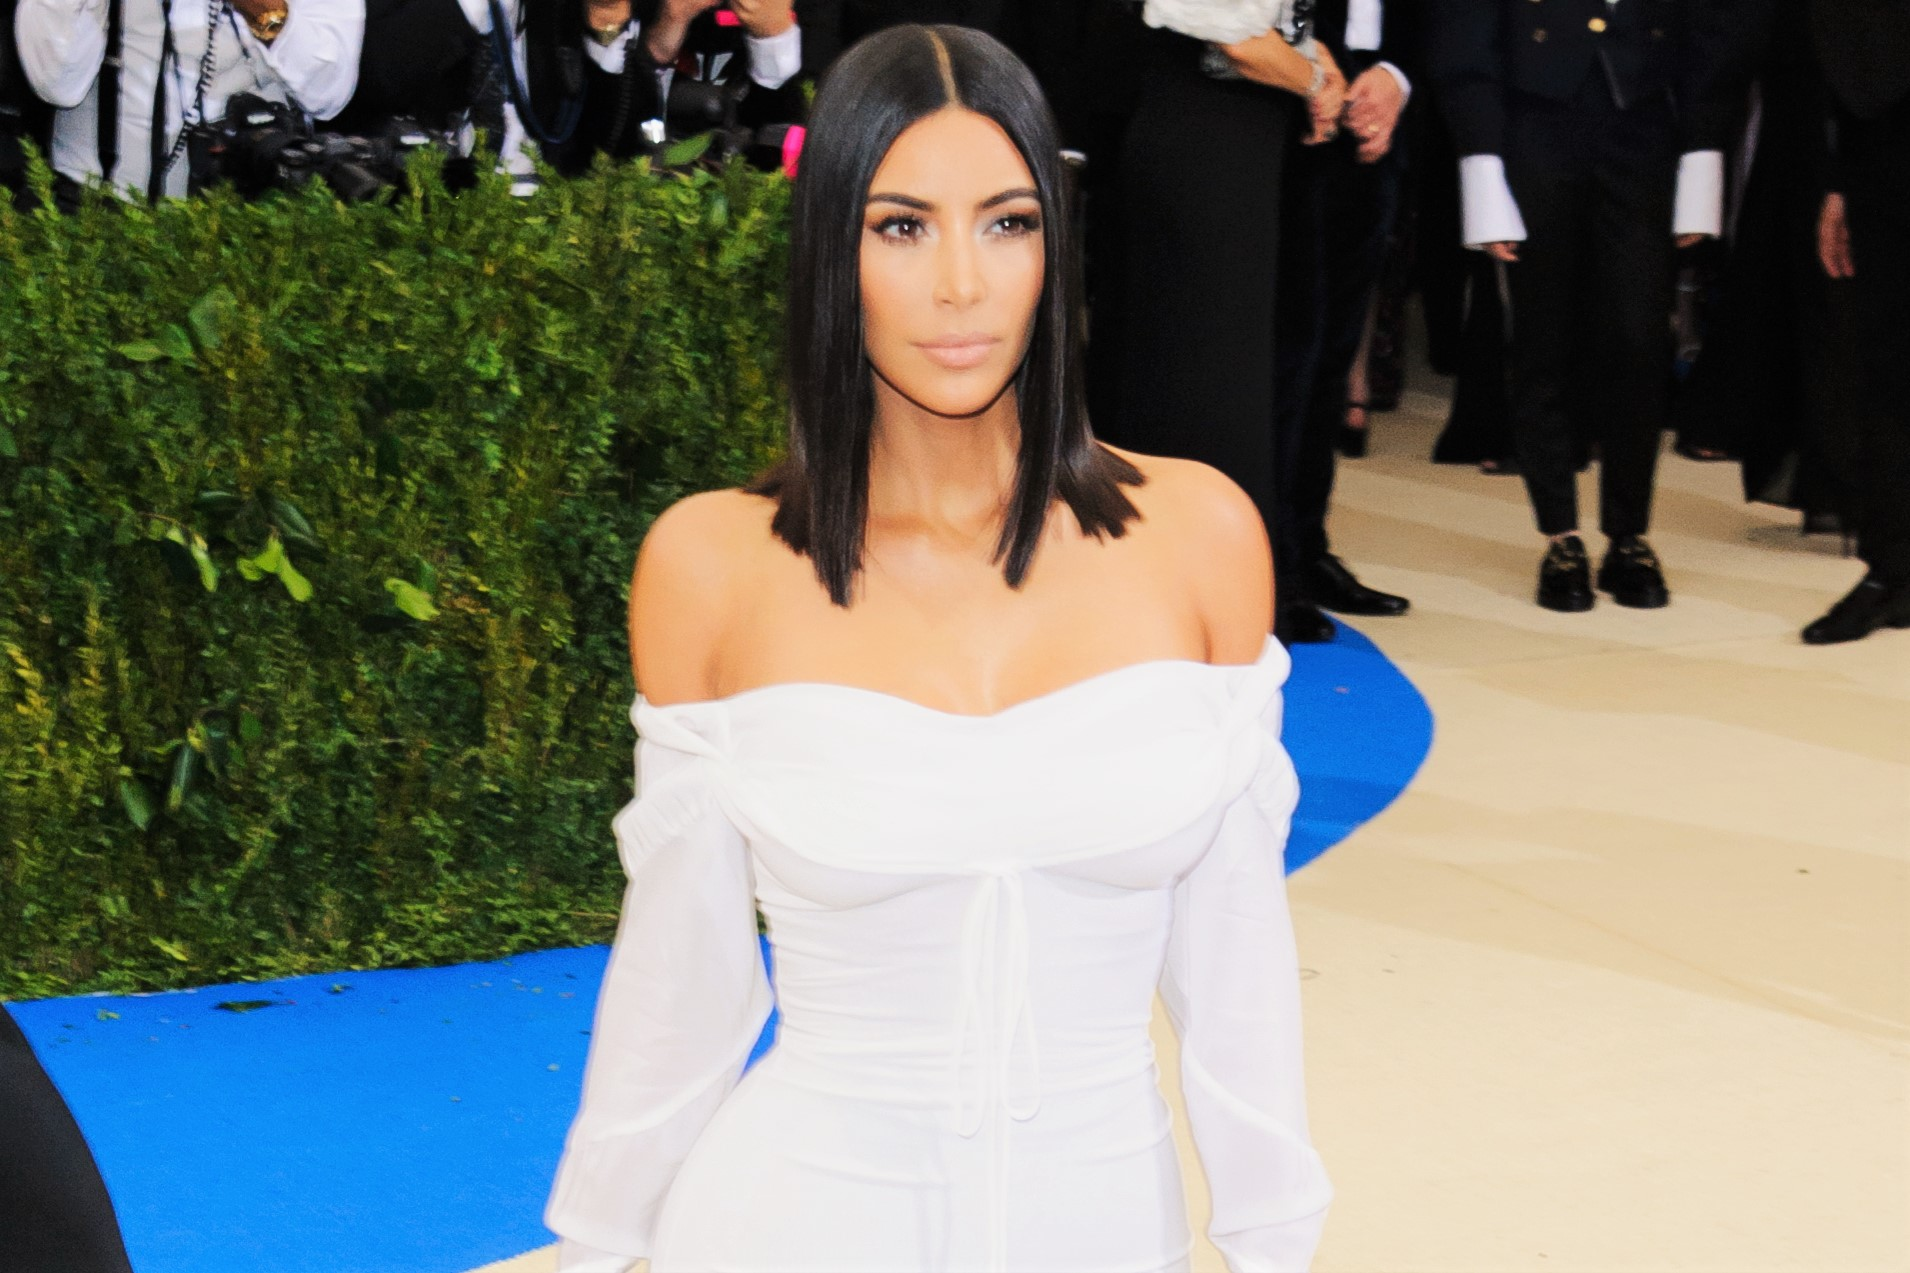 Kim Kardashian West White Dress Short Black Hair